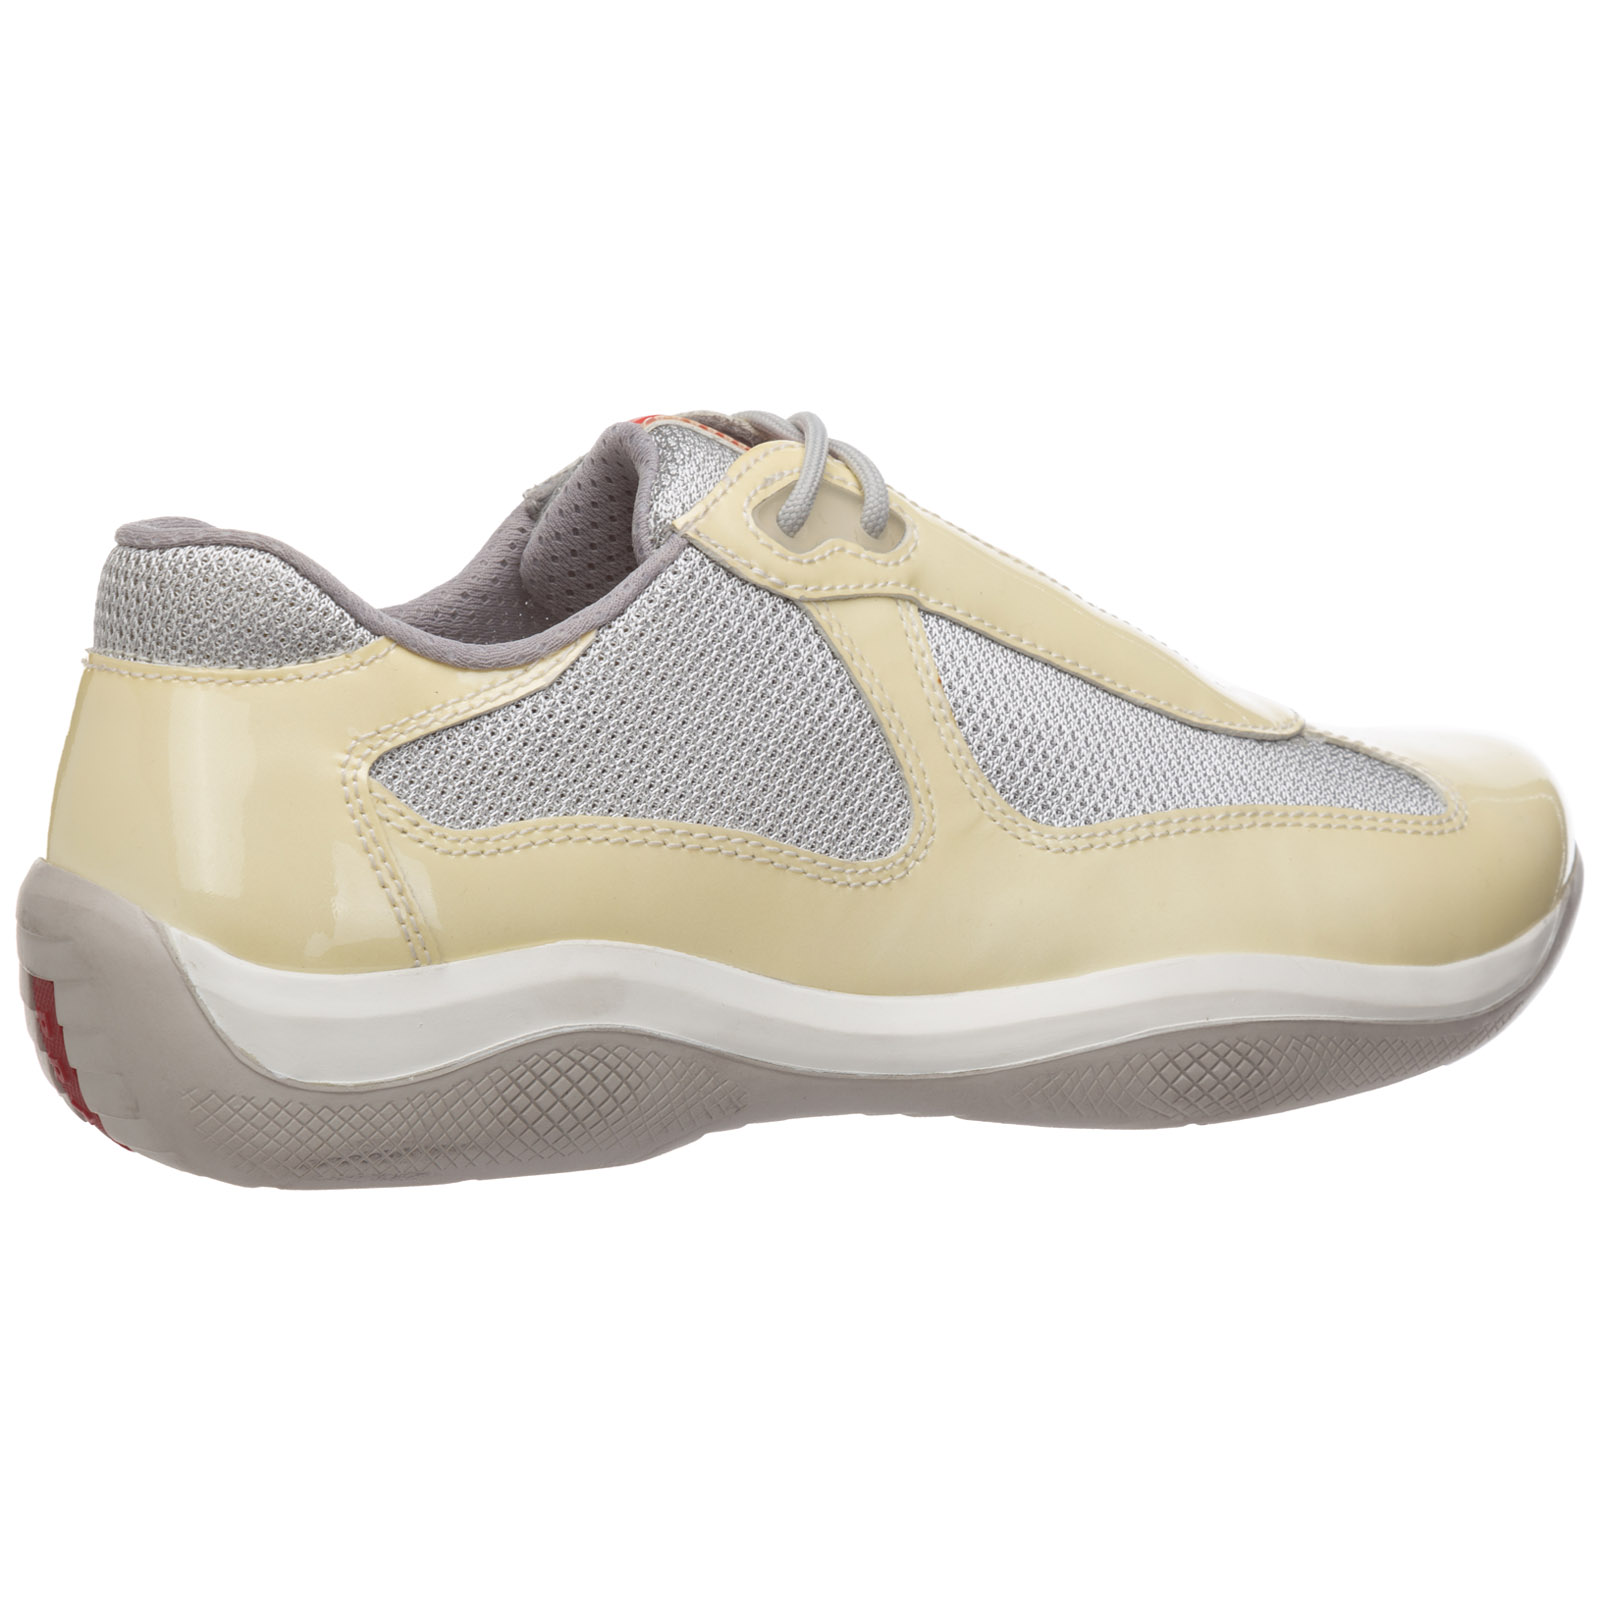 dd619bfbecd ... Women s shoes leather trainers sneakers america s cup ...